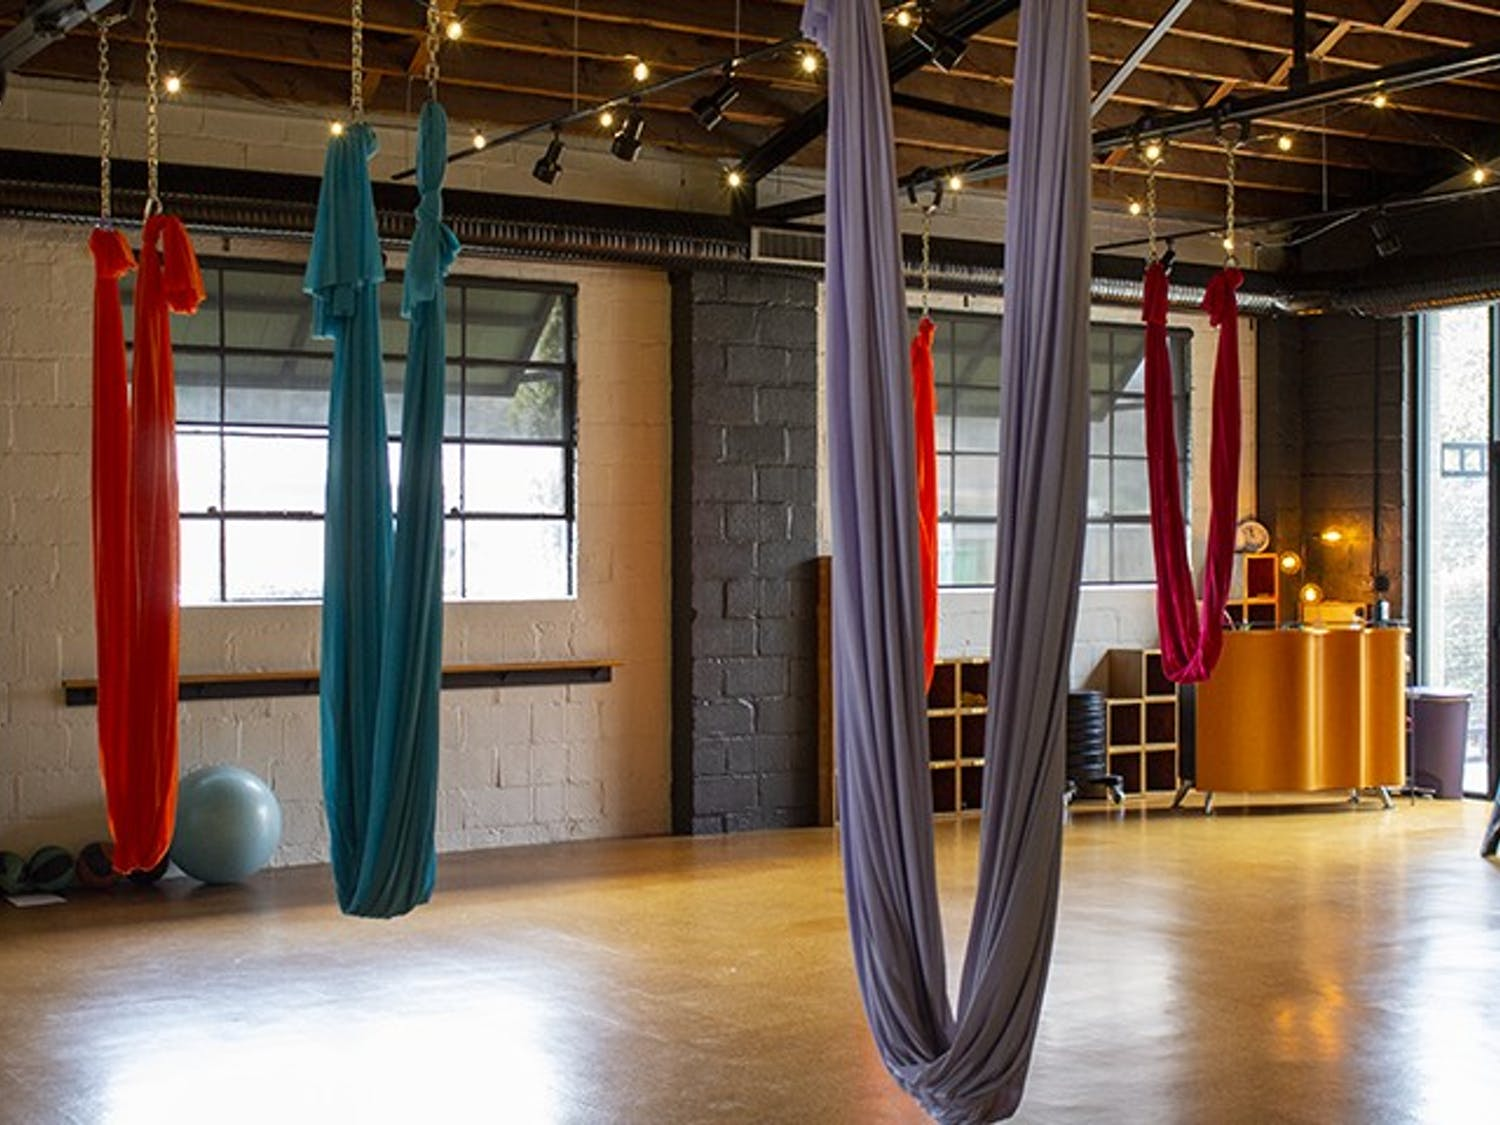 Fit Columbia, located at 2121 College St., is known for its aerial yoga, with colorful silks hanging from the ceiling that help customers soar into the air effortlessly.